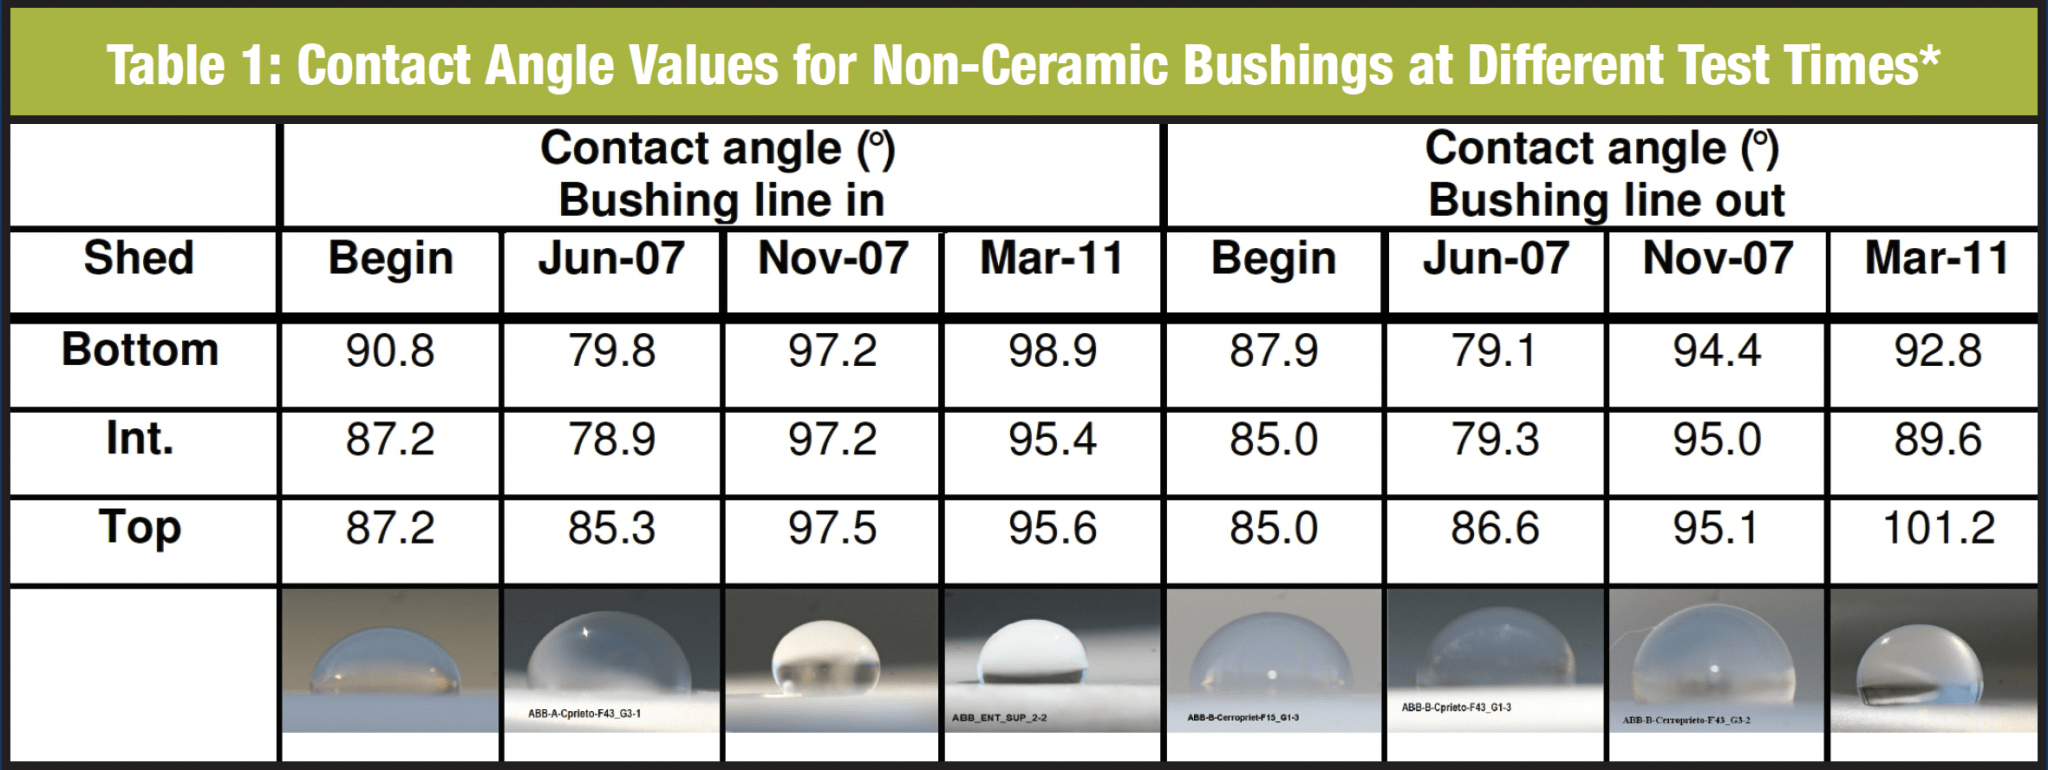 non-ceramic bushing Past Experience in Mexico With Non-Ceramic Bushings in Contaminated & Seismic Areas ows images of water drops on top shed for each evaluation